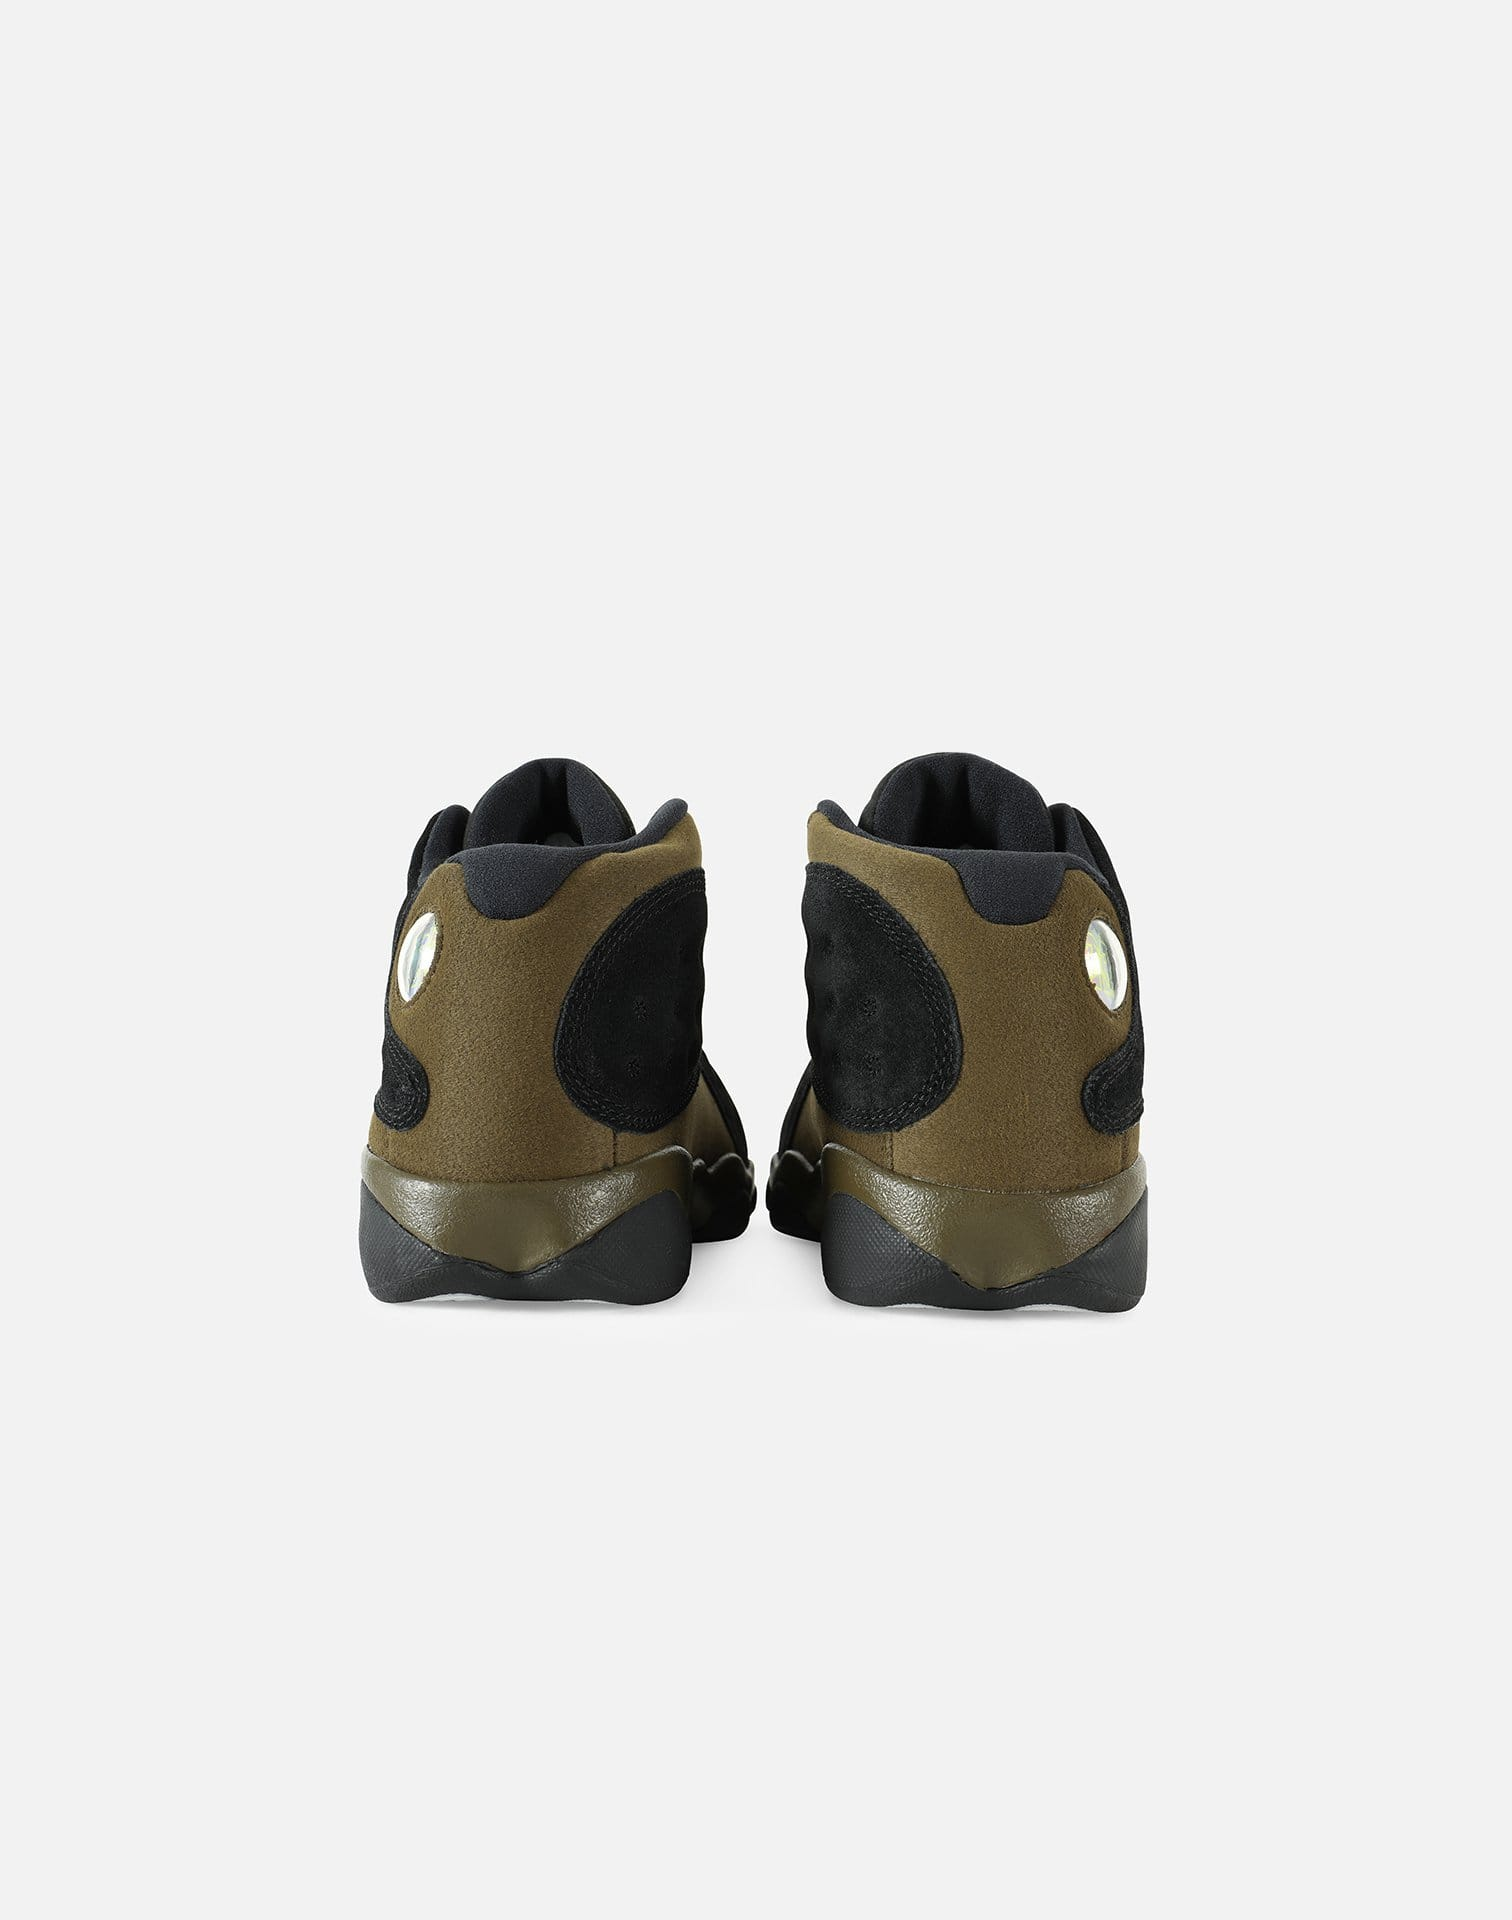 Jordan Air Jordan Retro 13 'Olive' Pre-School